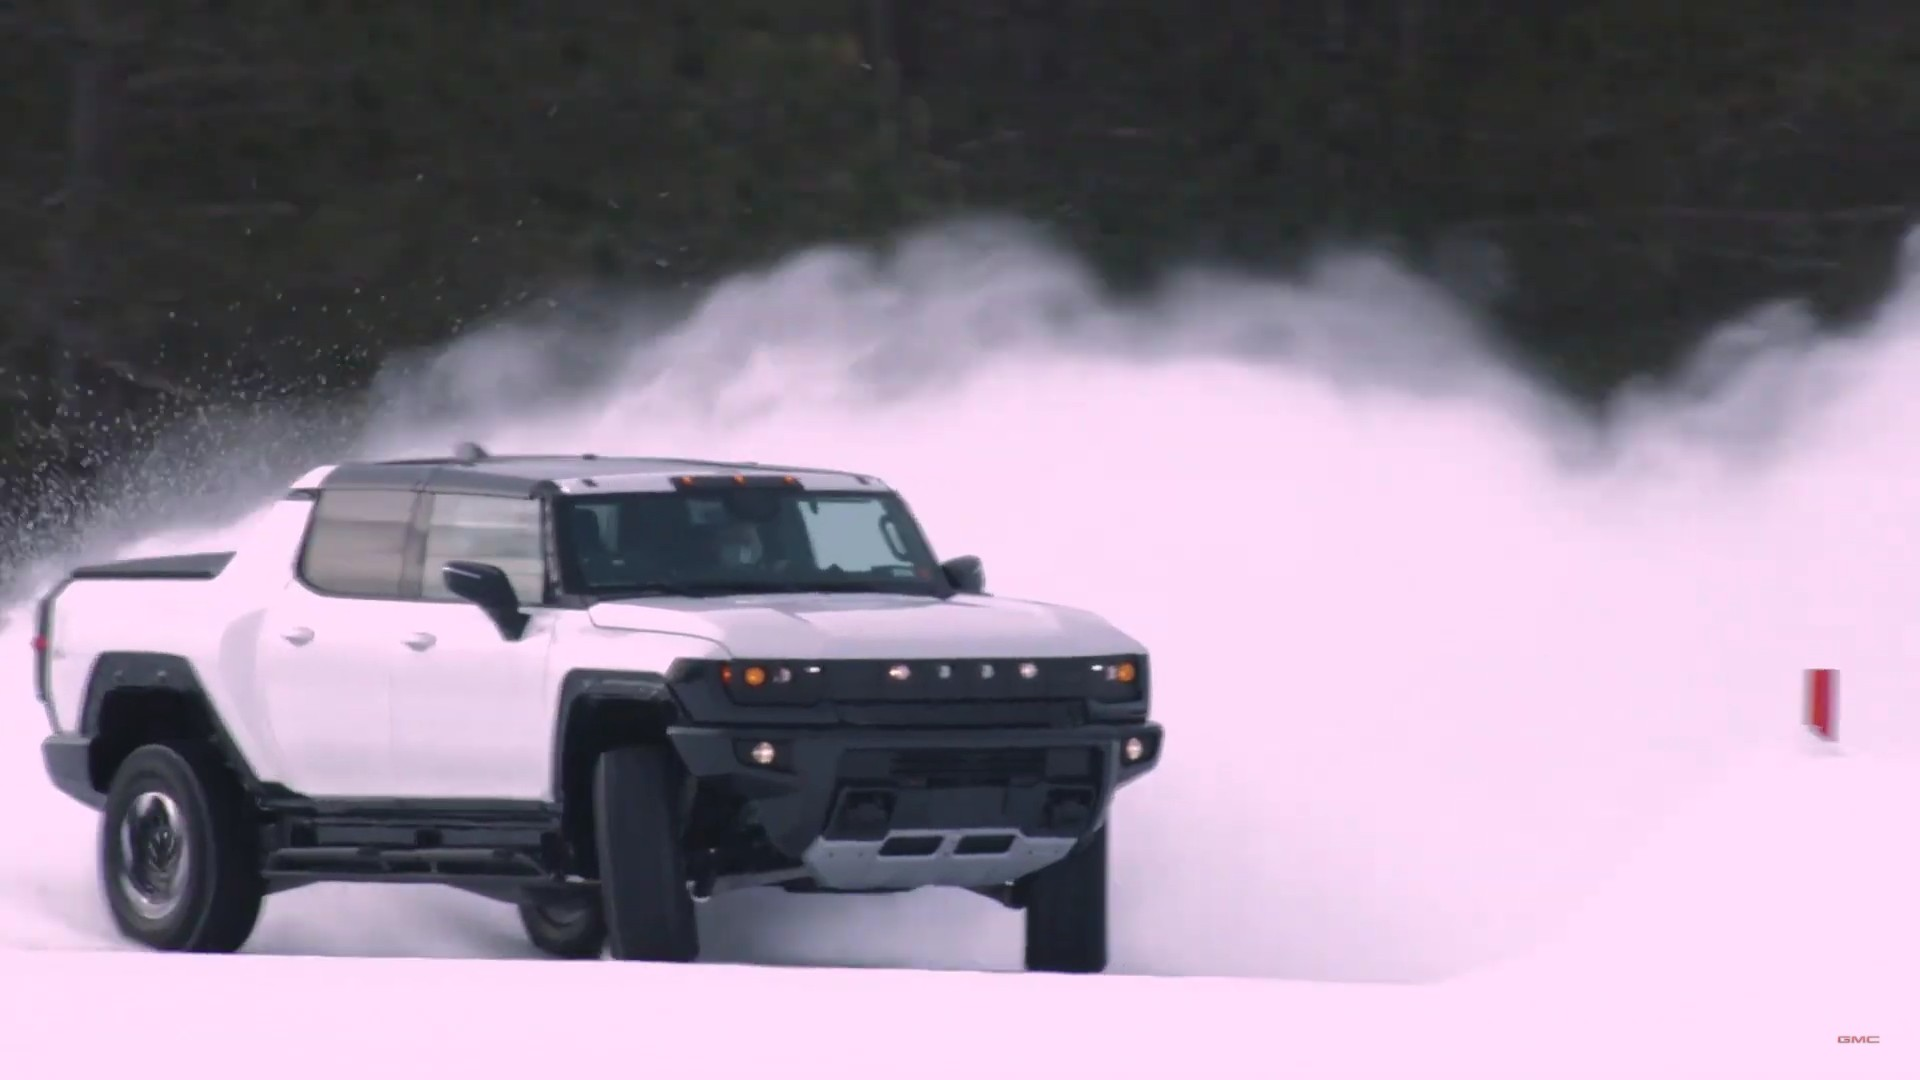 4.5 Tons Of Fun: The GMC Hummer EV Will Weigh A Reported 9,046lbs – Pretty Crazy